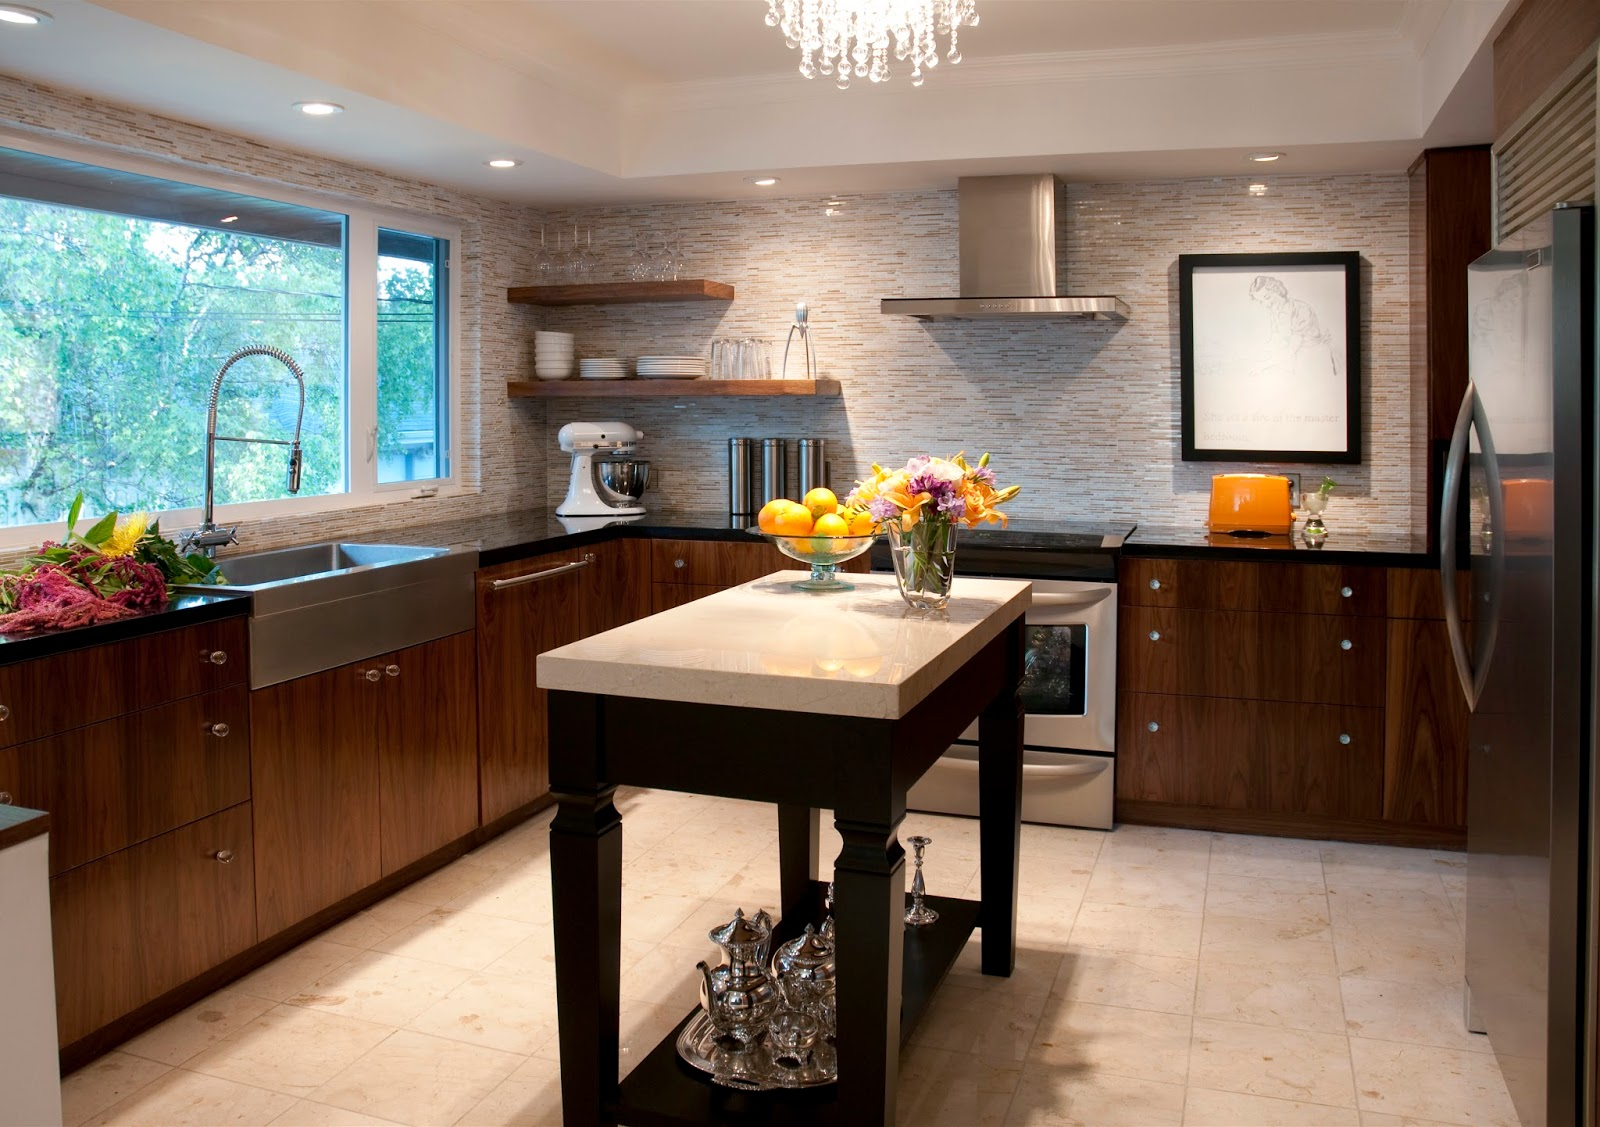 Jeff Lewis Kitchen Designs Fugina Construction Remodeling Home Design Trends For 2014